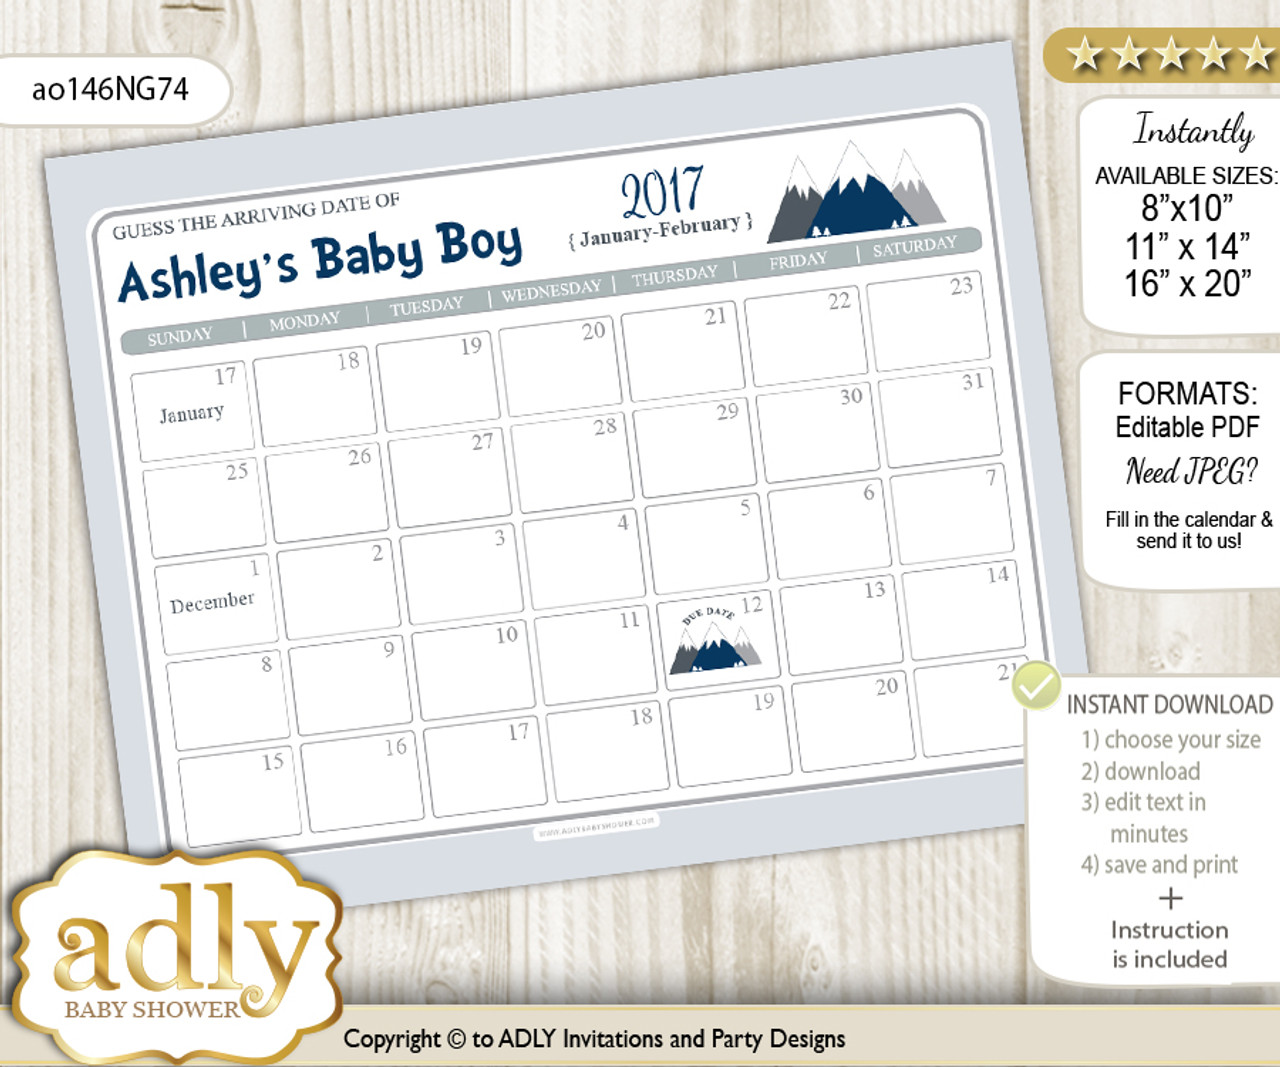 S121 Guess Baby/'s Due Date Calendar Baby Shower Sign Editable Template Instant Download Boy Over the Moon Baby Shower Game